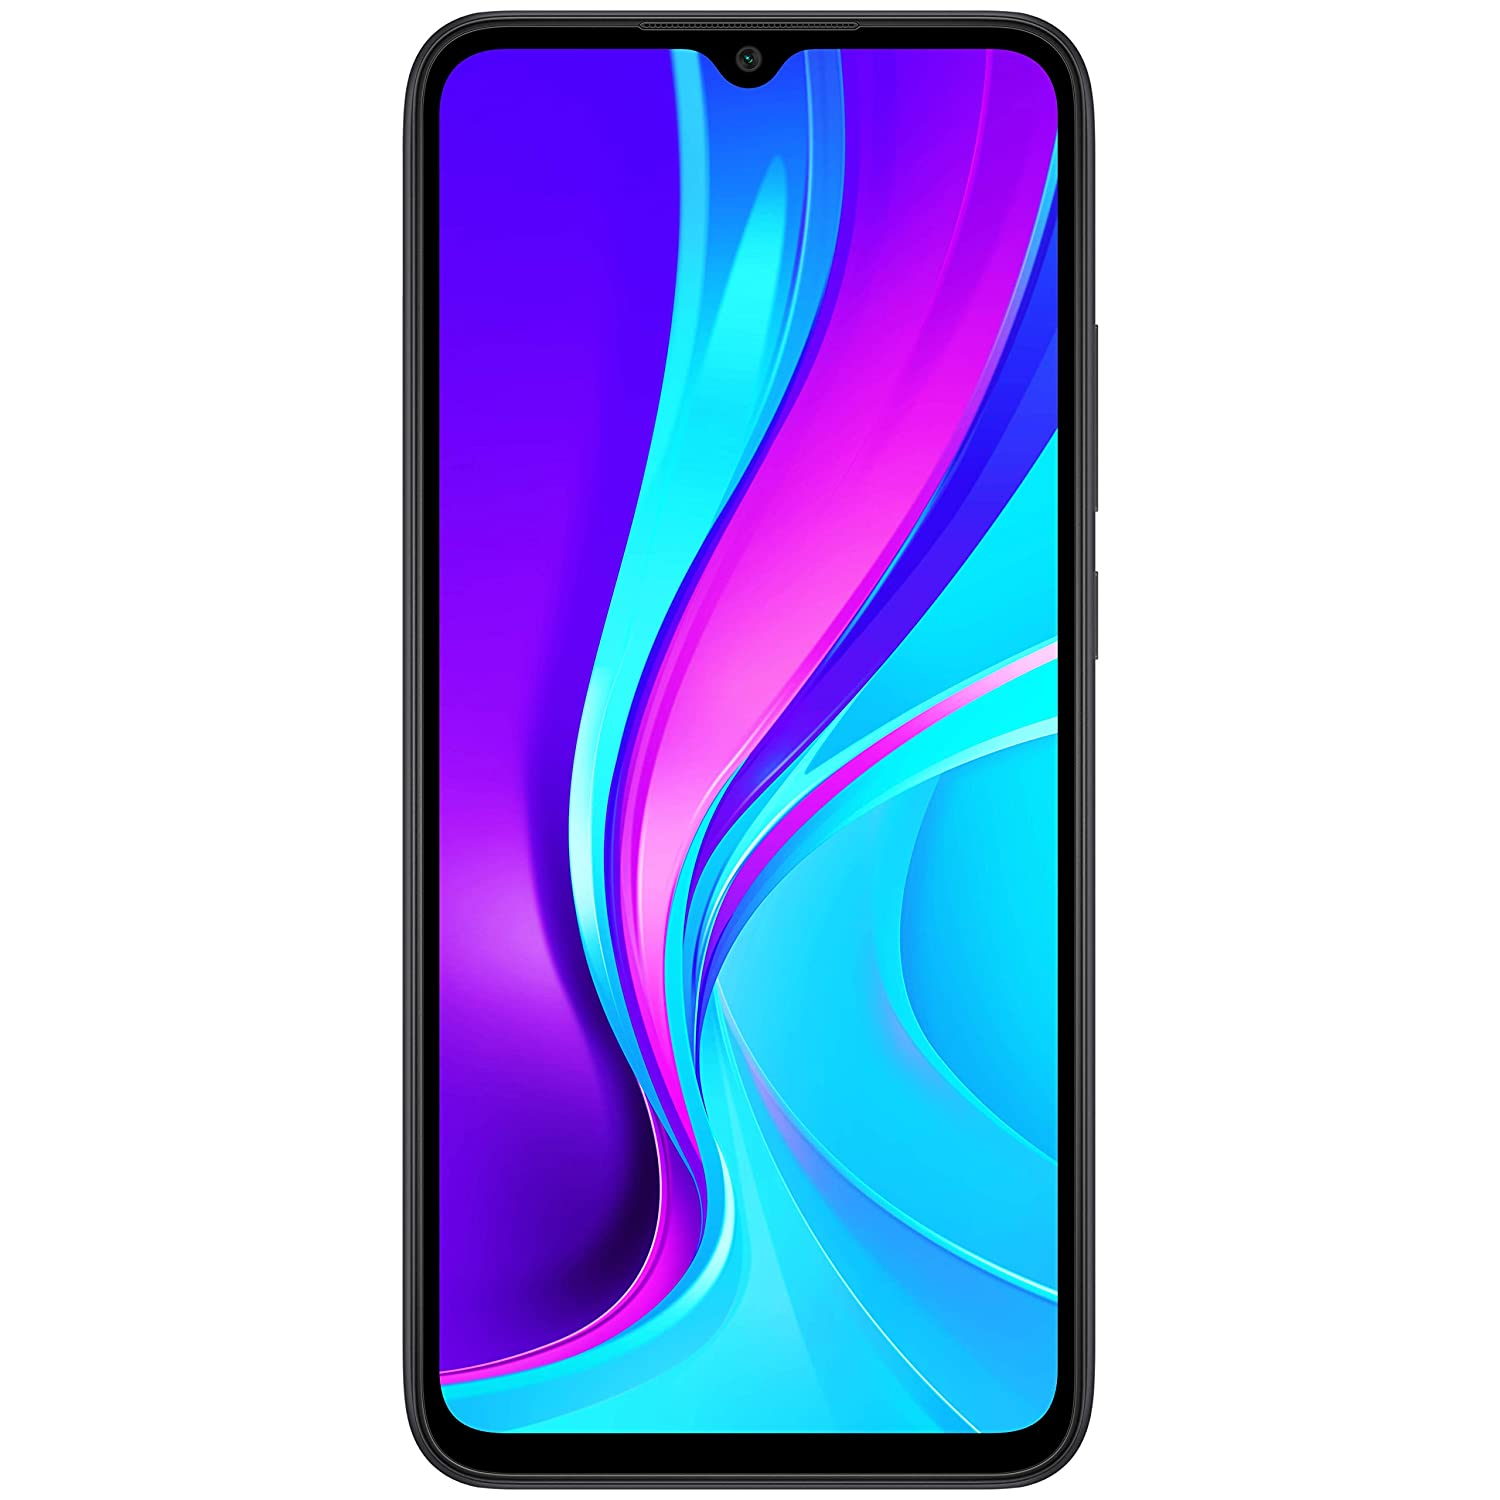 Redmi 9 (Carbon Black, 4GB RAM, 64GB Storage) | 3 Months No Cost EMI on BFL